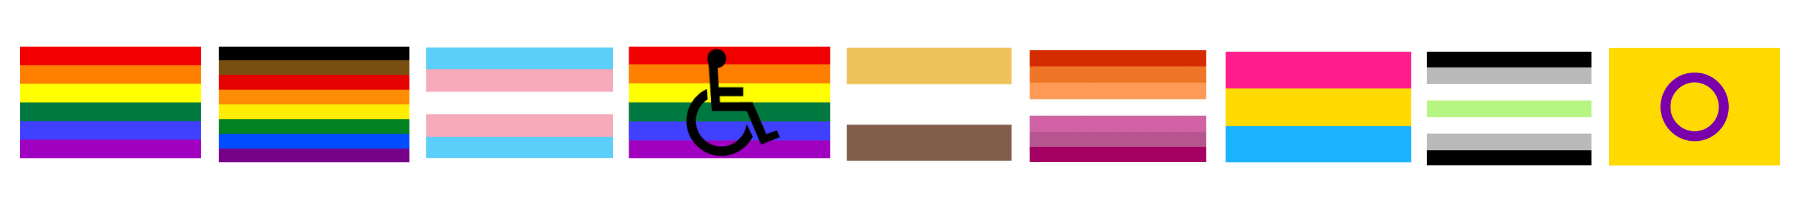 diversity and inclusion flags